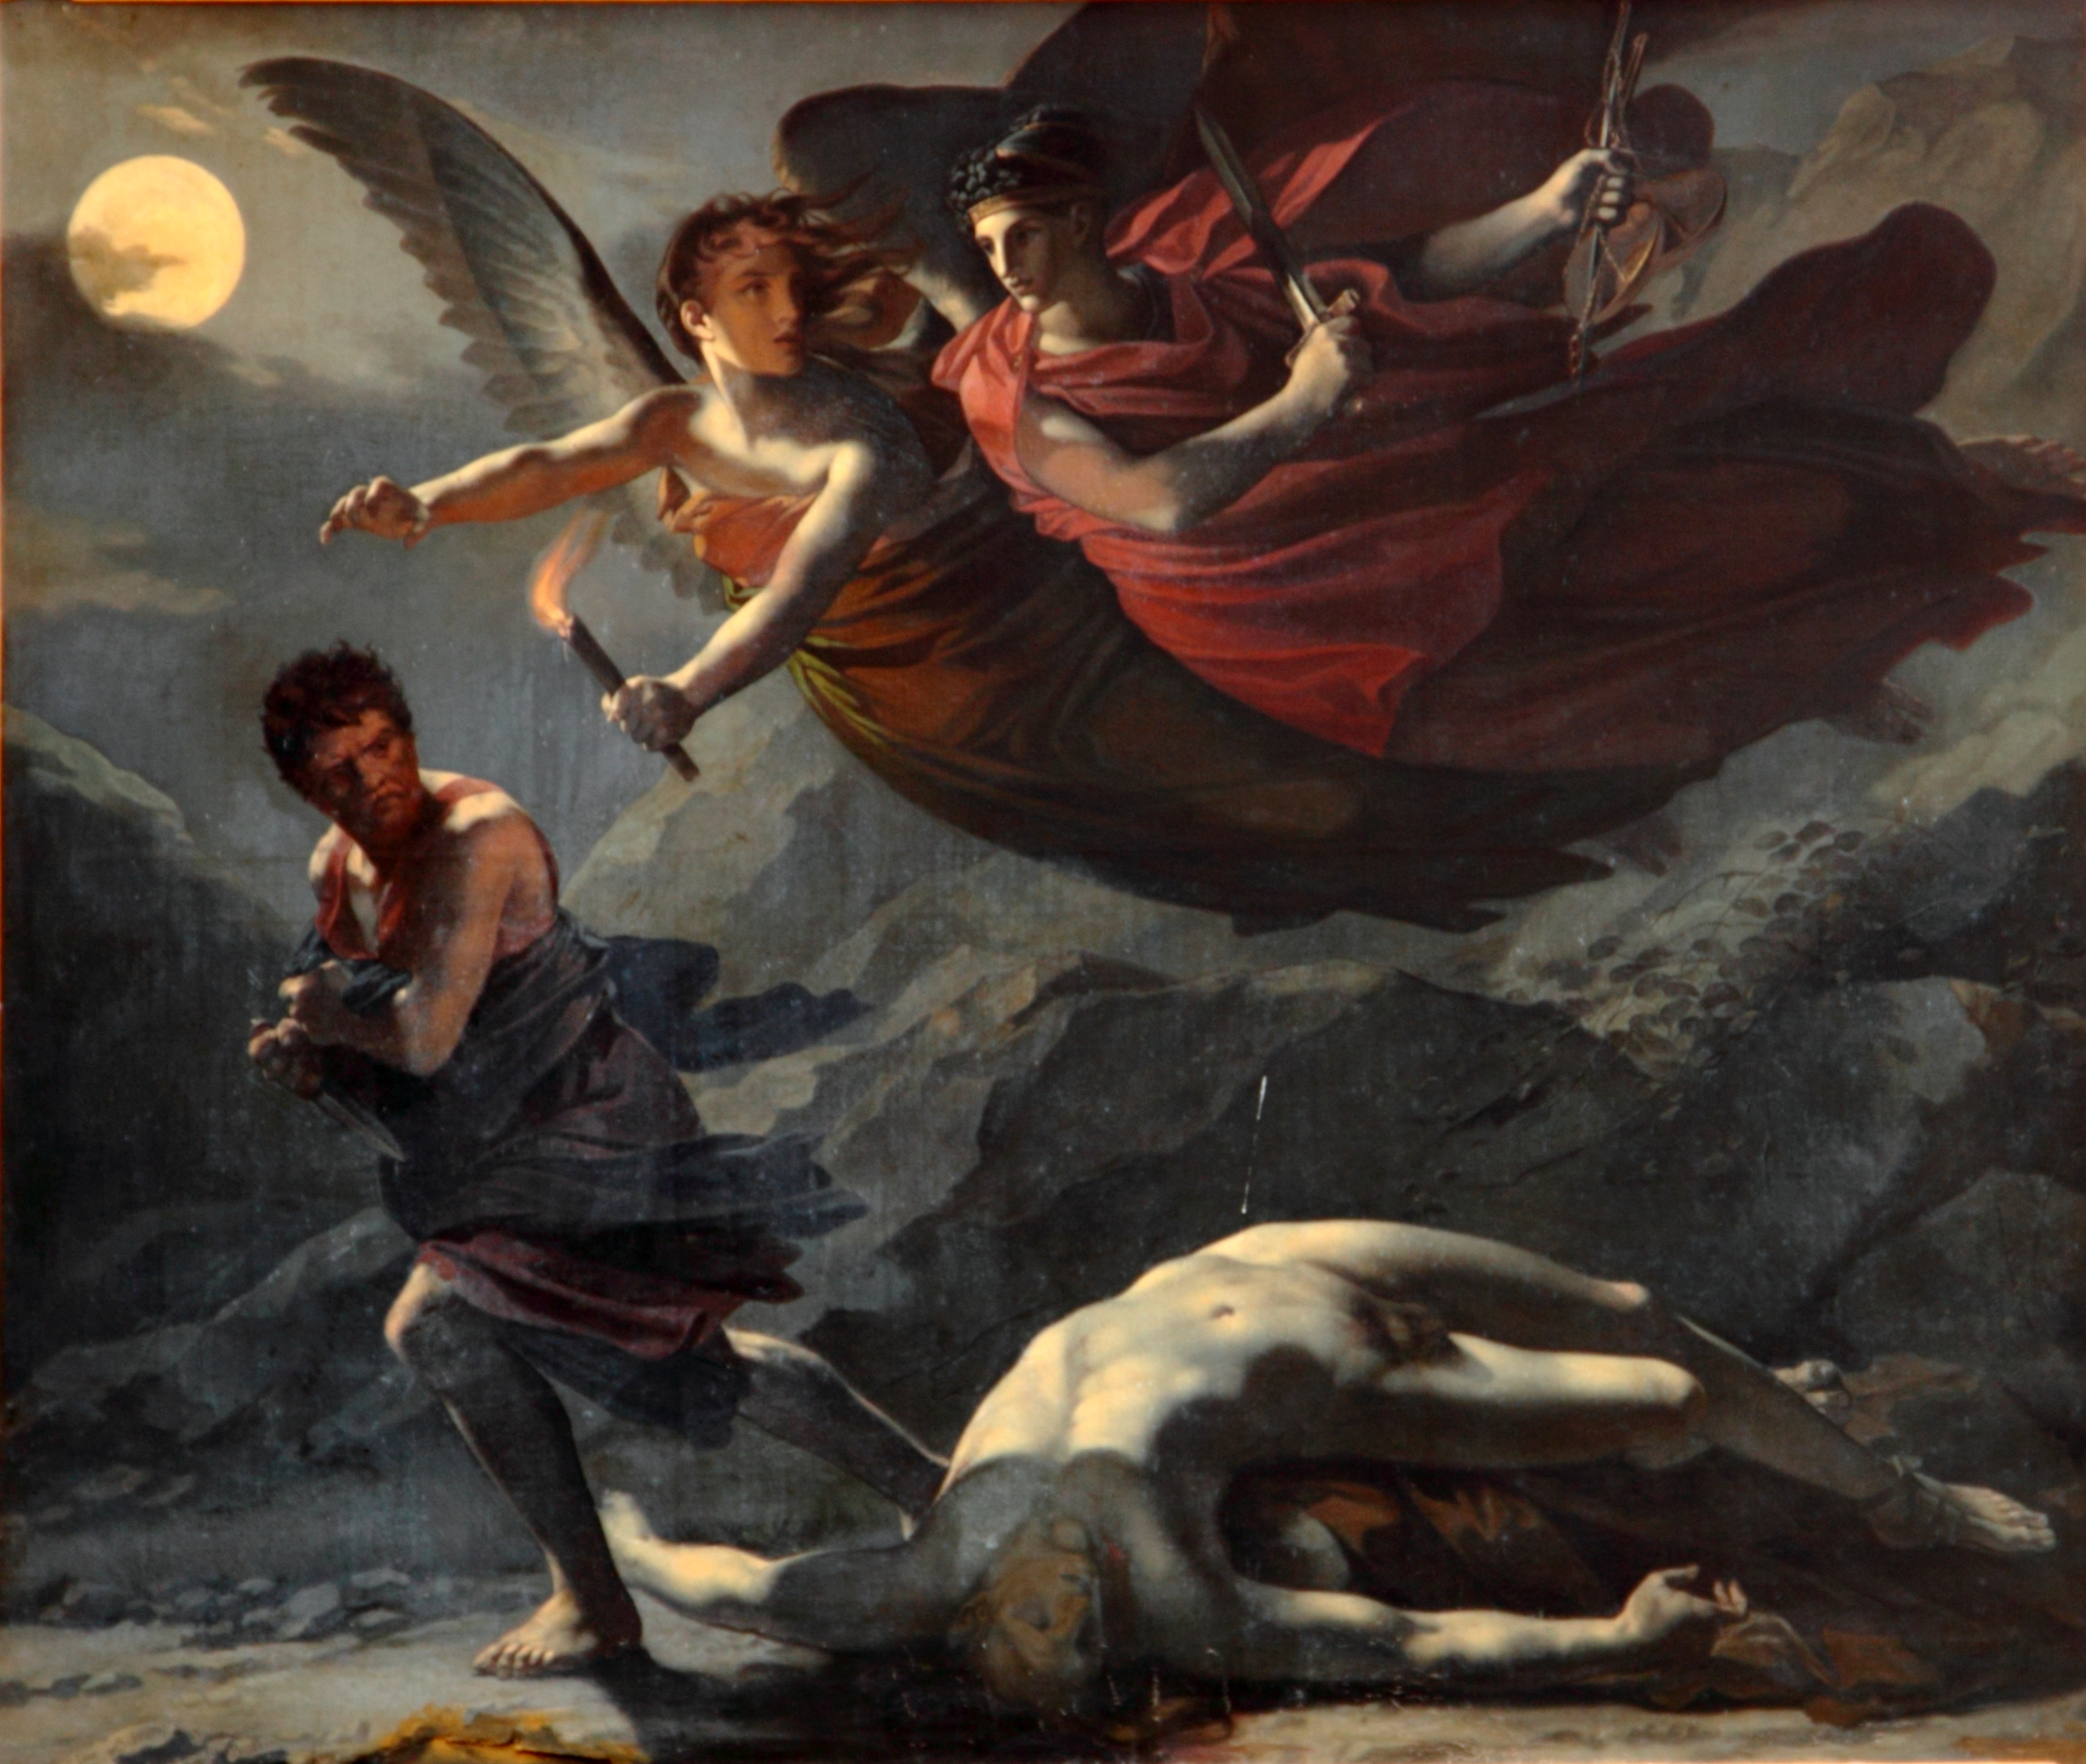 justice in hamlet Free essay: revenge in shakespeare's hamlet in hamlet, shakespeare uses revenge as a major theme present throughout the work revenge plays a crucial role in.